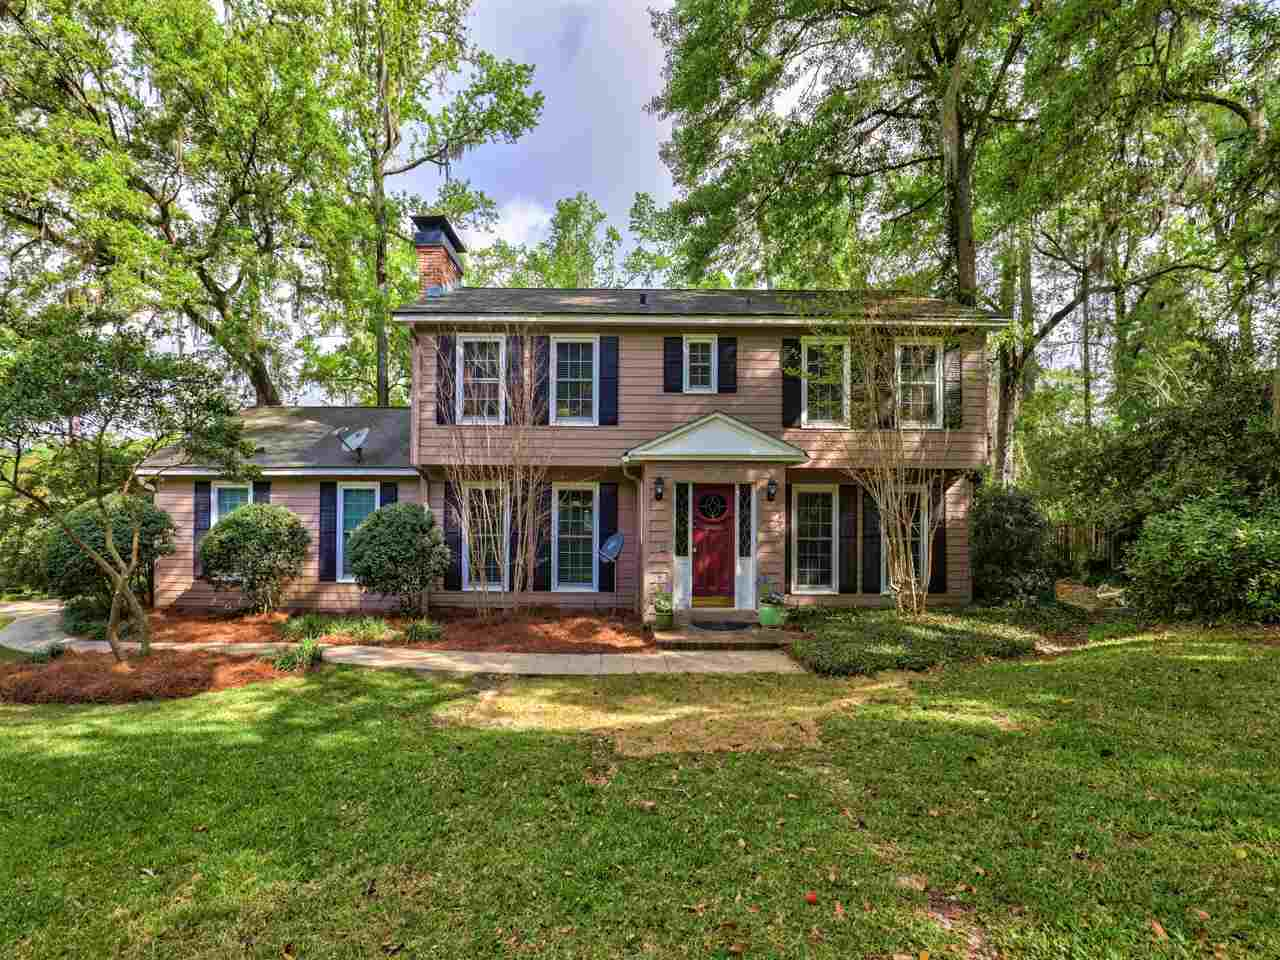 This 4285 sq ft home features a spacious master suite with fireplace and spa-like master bath including bidet, gourmet kitchen with butler pantry, stunning glass solarium, and the potential for multiple in-law suites. This home features walk in closets and so many extra storage features! This 3 story, 4 bedroom, 4.5 bath home with 2 car garage has been remodeled while maintaining its original character and charm making it ideal for multi-generational living and entertaining! Nestled in Betton Hill and only one block from Guyte McCord Park.